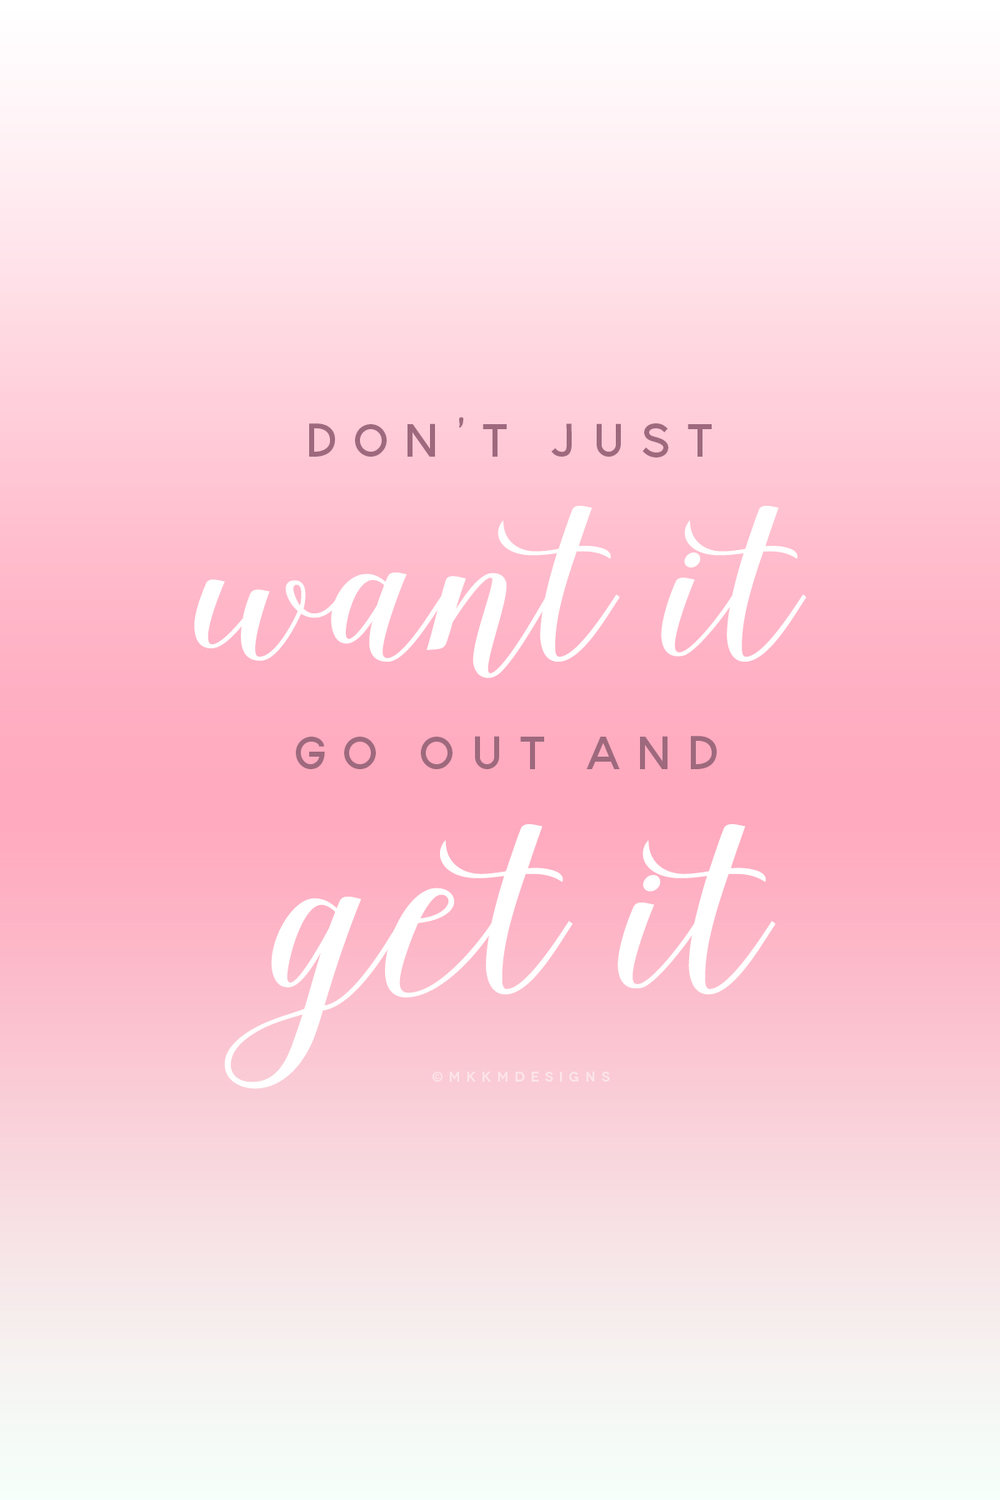 Don't Just Want It, Go Out and Get it - Monday Motivation for Boss Ladies and Mompreneurs  // Quotes from MKKMDesigns